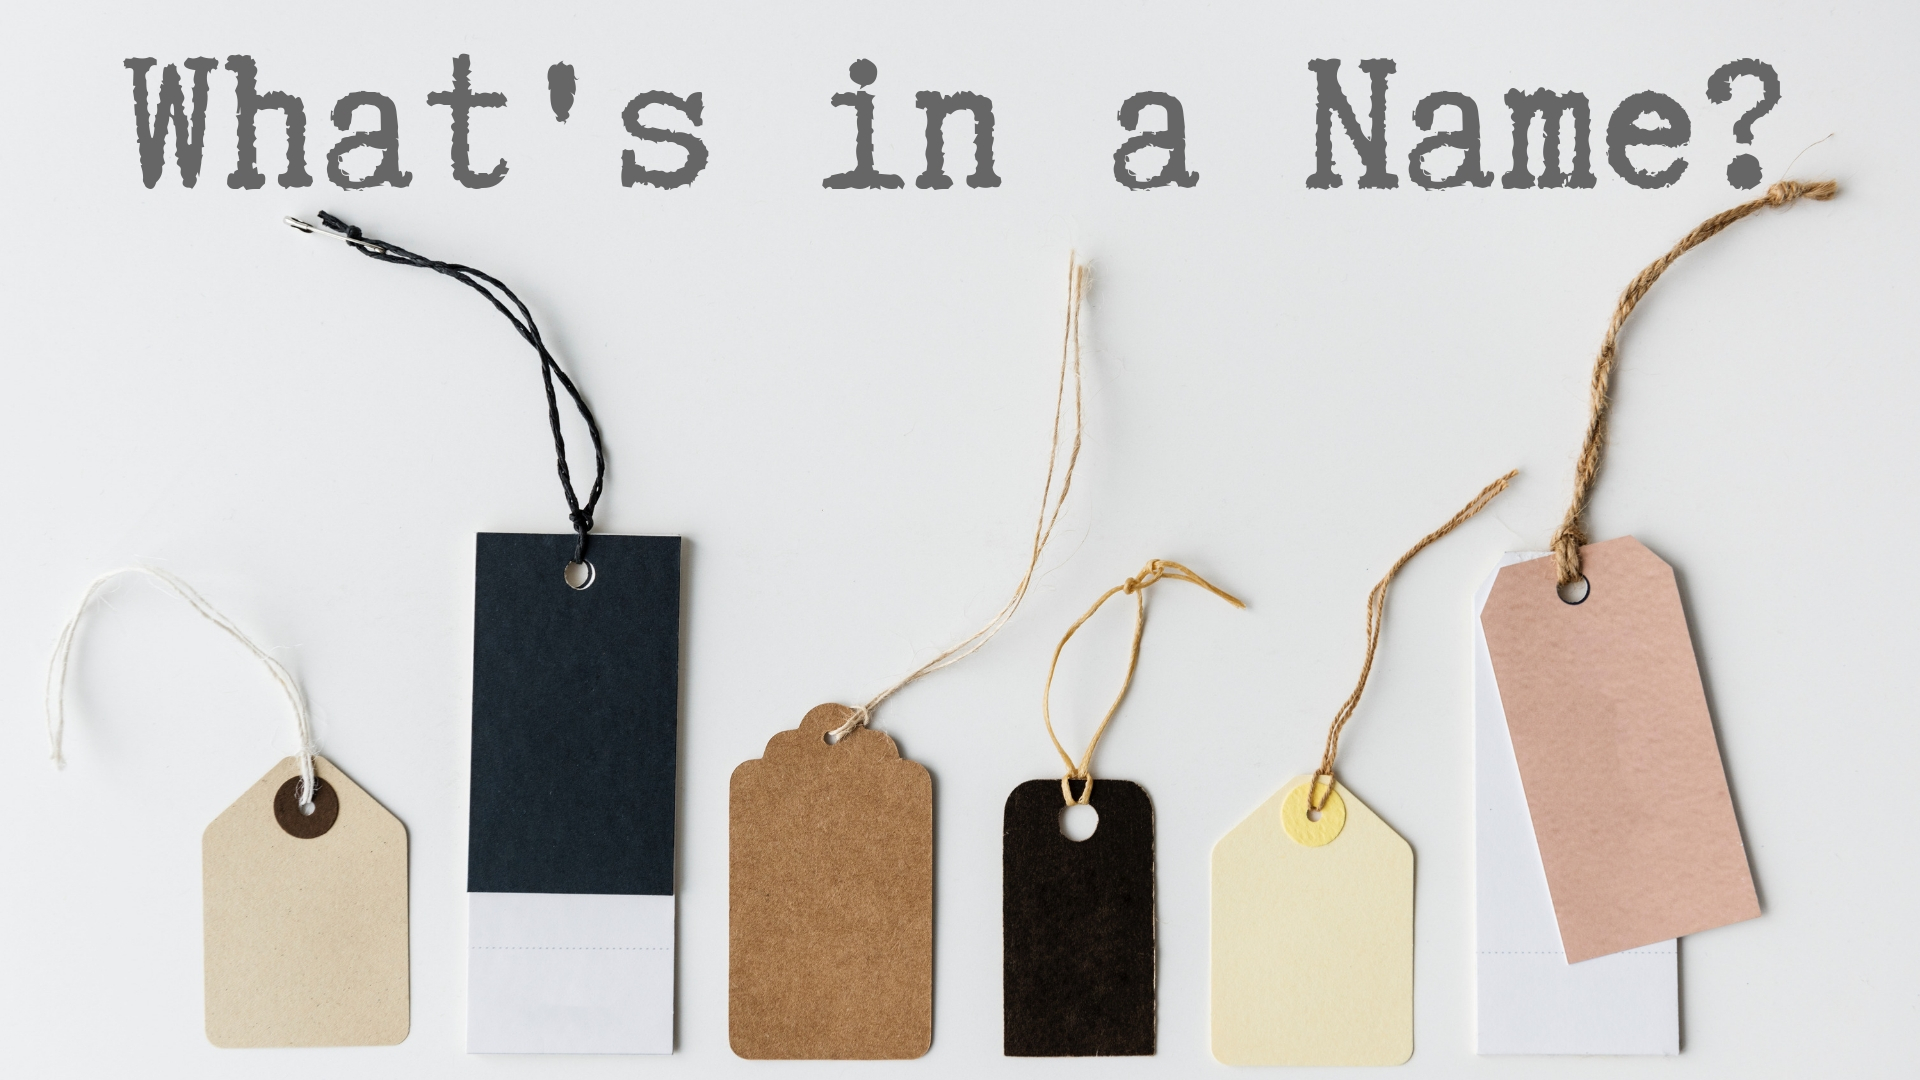 banner-whats-in-a-name-02.jpg